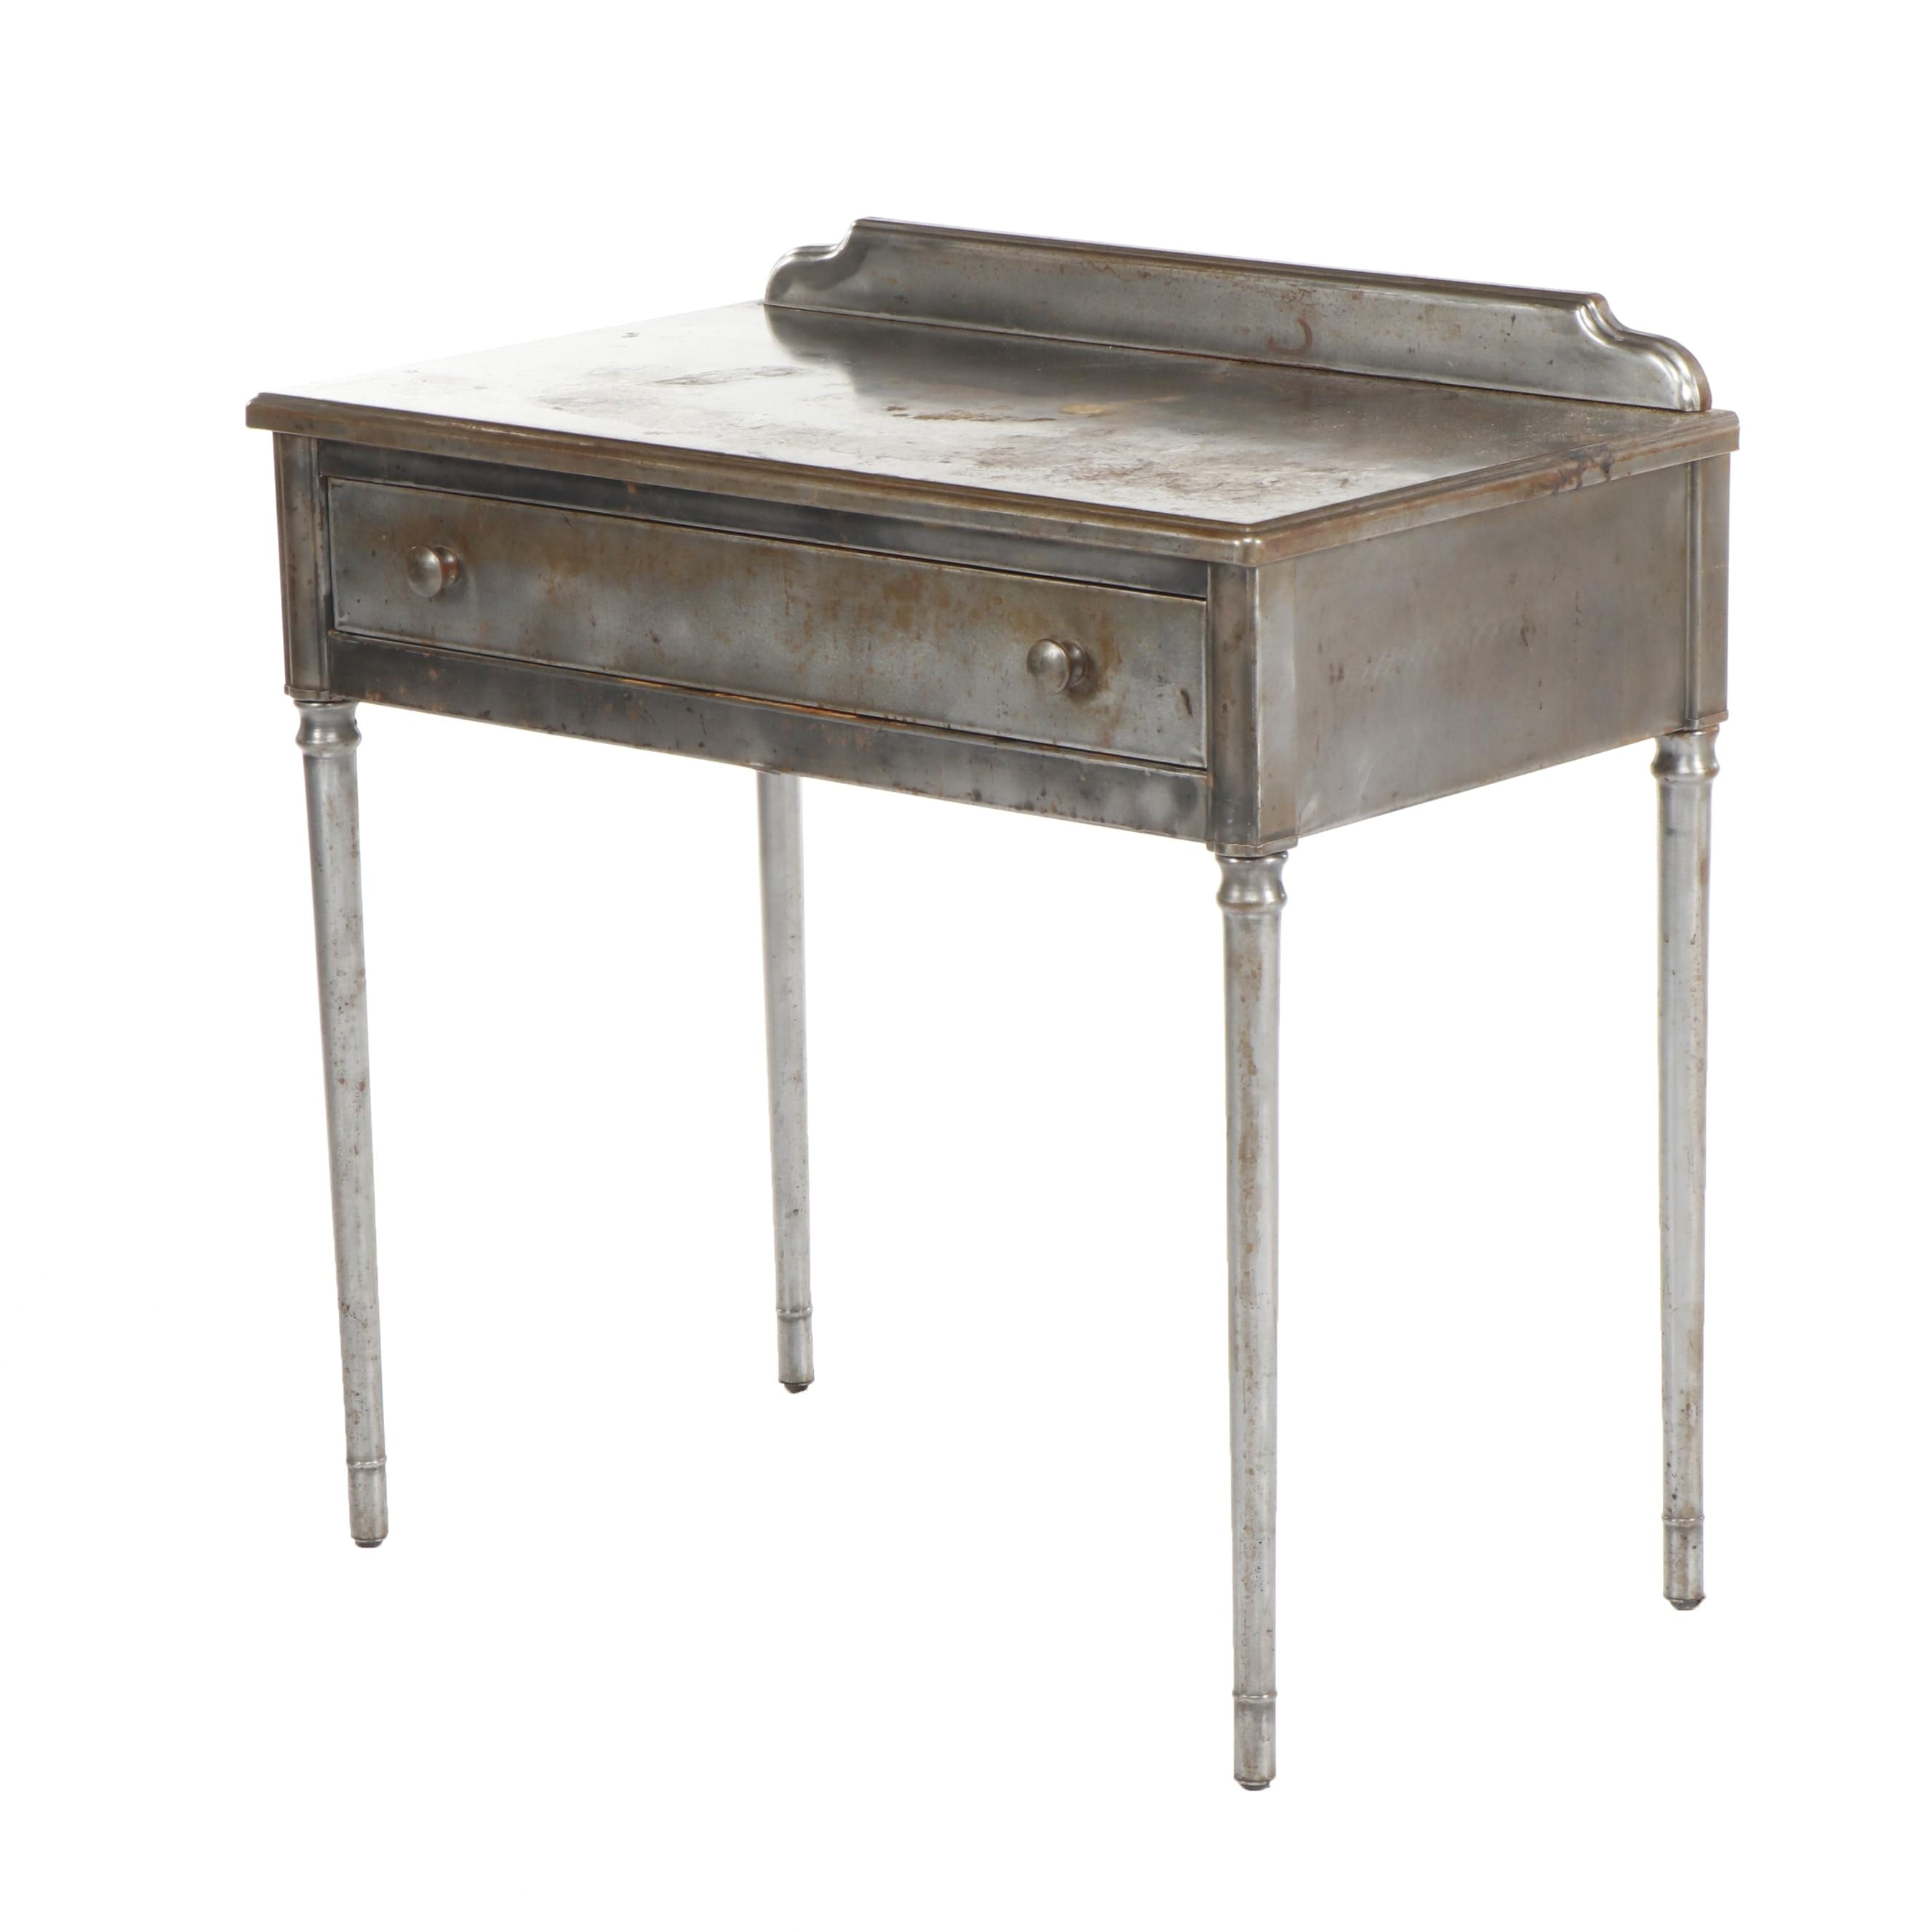 Sheraton Series Brushed Steel Desk Attributed to Simmons Furniture Circa 1930